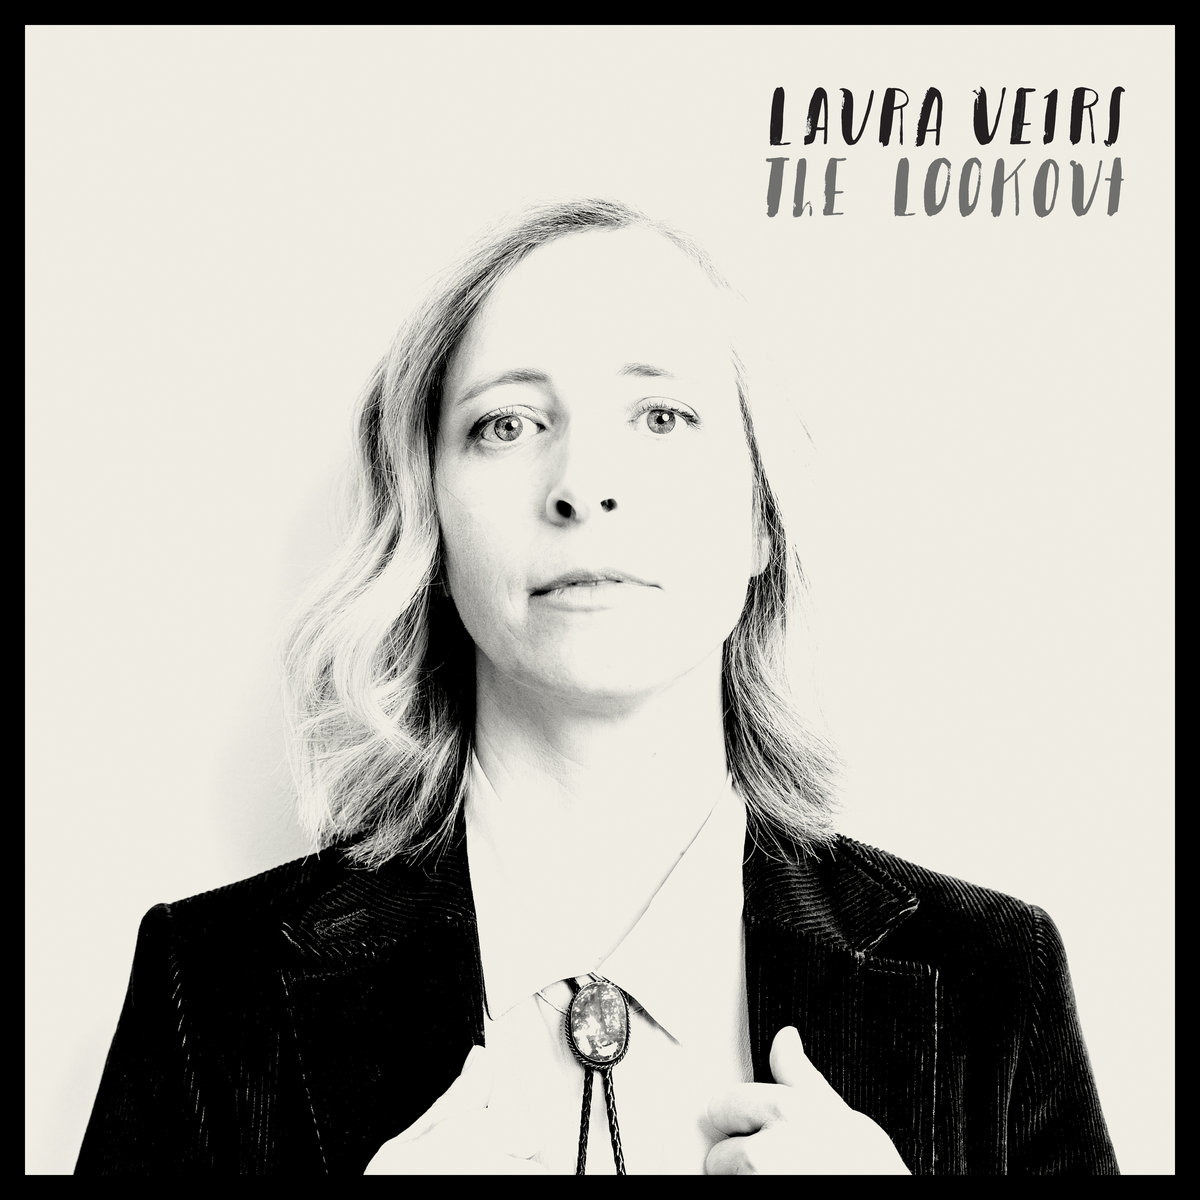 The Lookout - Laura VeirsRaven Marching Band RecordsAbril/2018Indie Folk / Dream PopO que achamos: Excelente